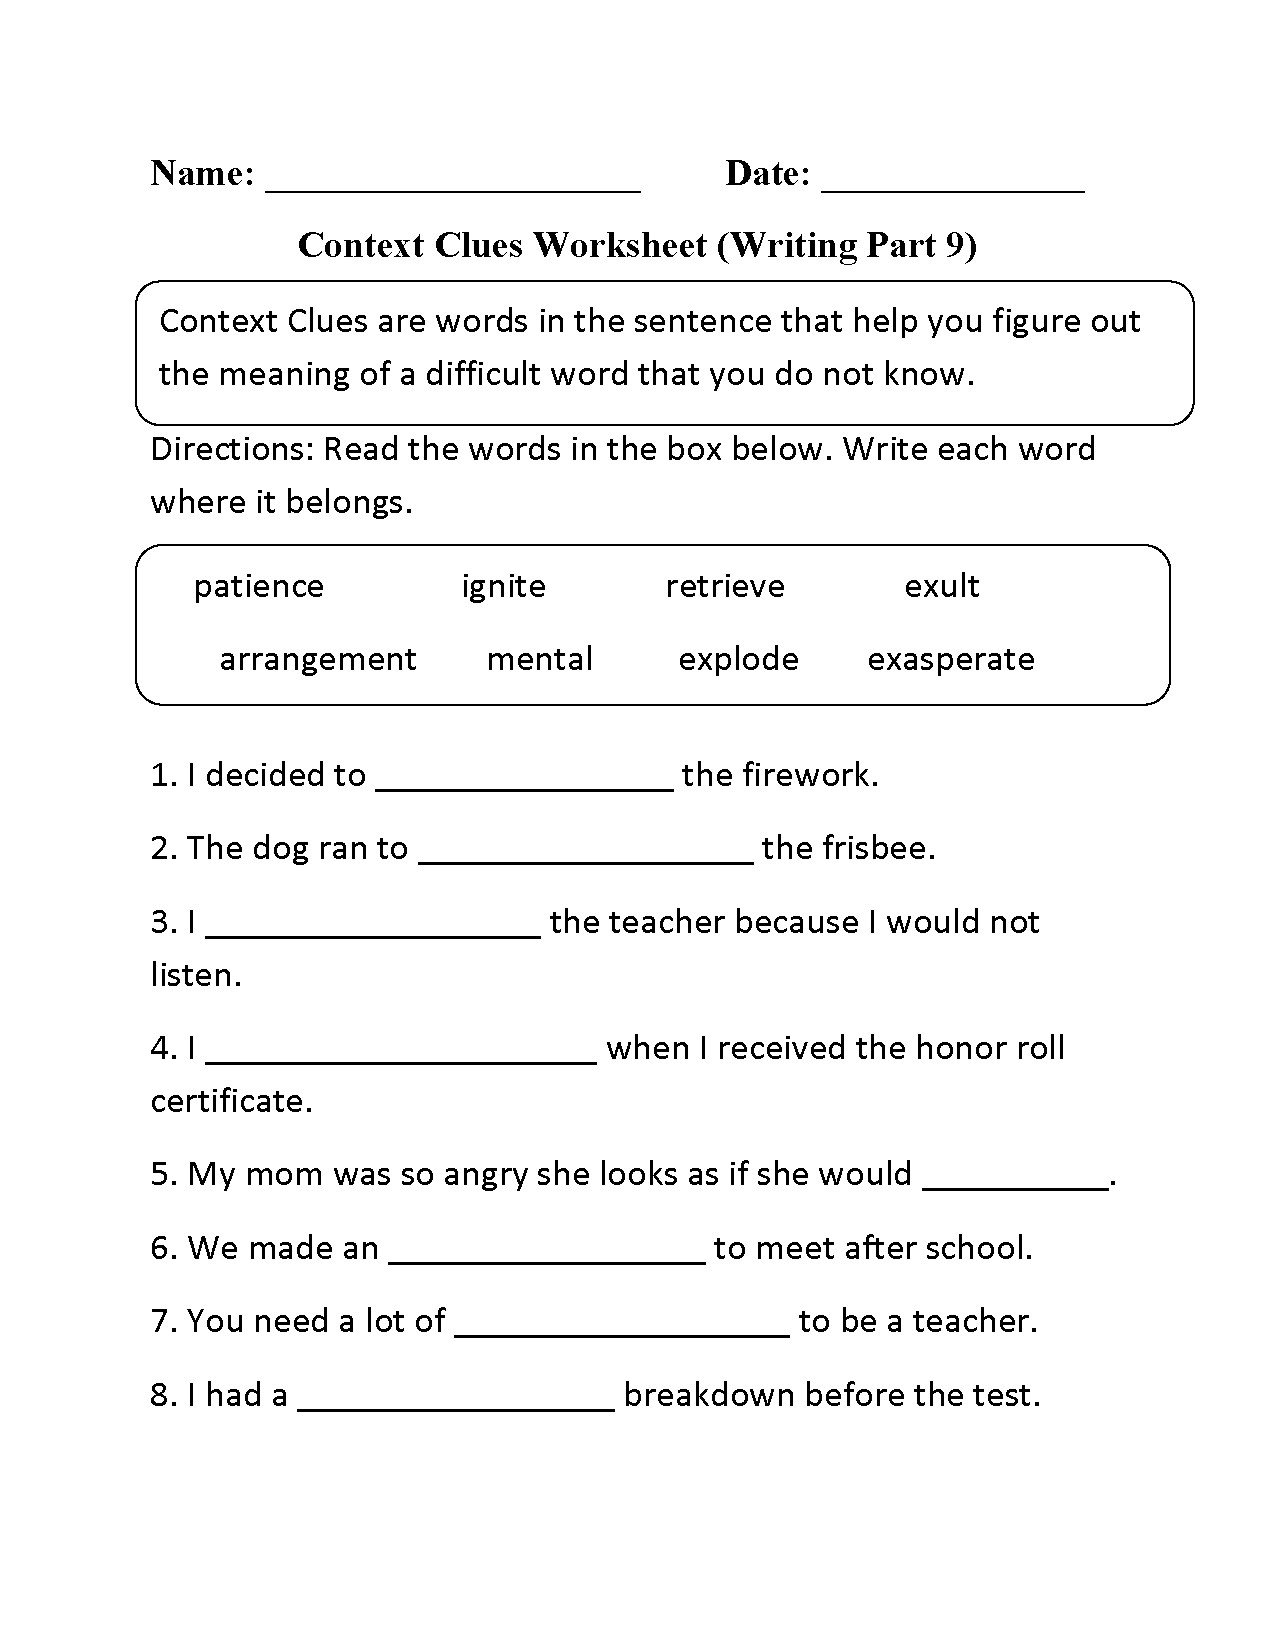 Context Clues Worksheets Second Grade Context Clues English Worksheet